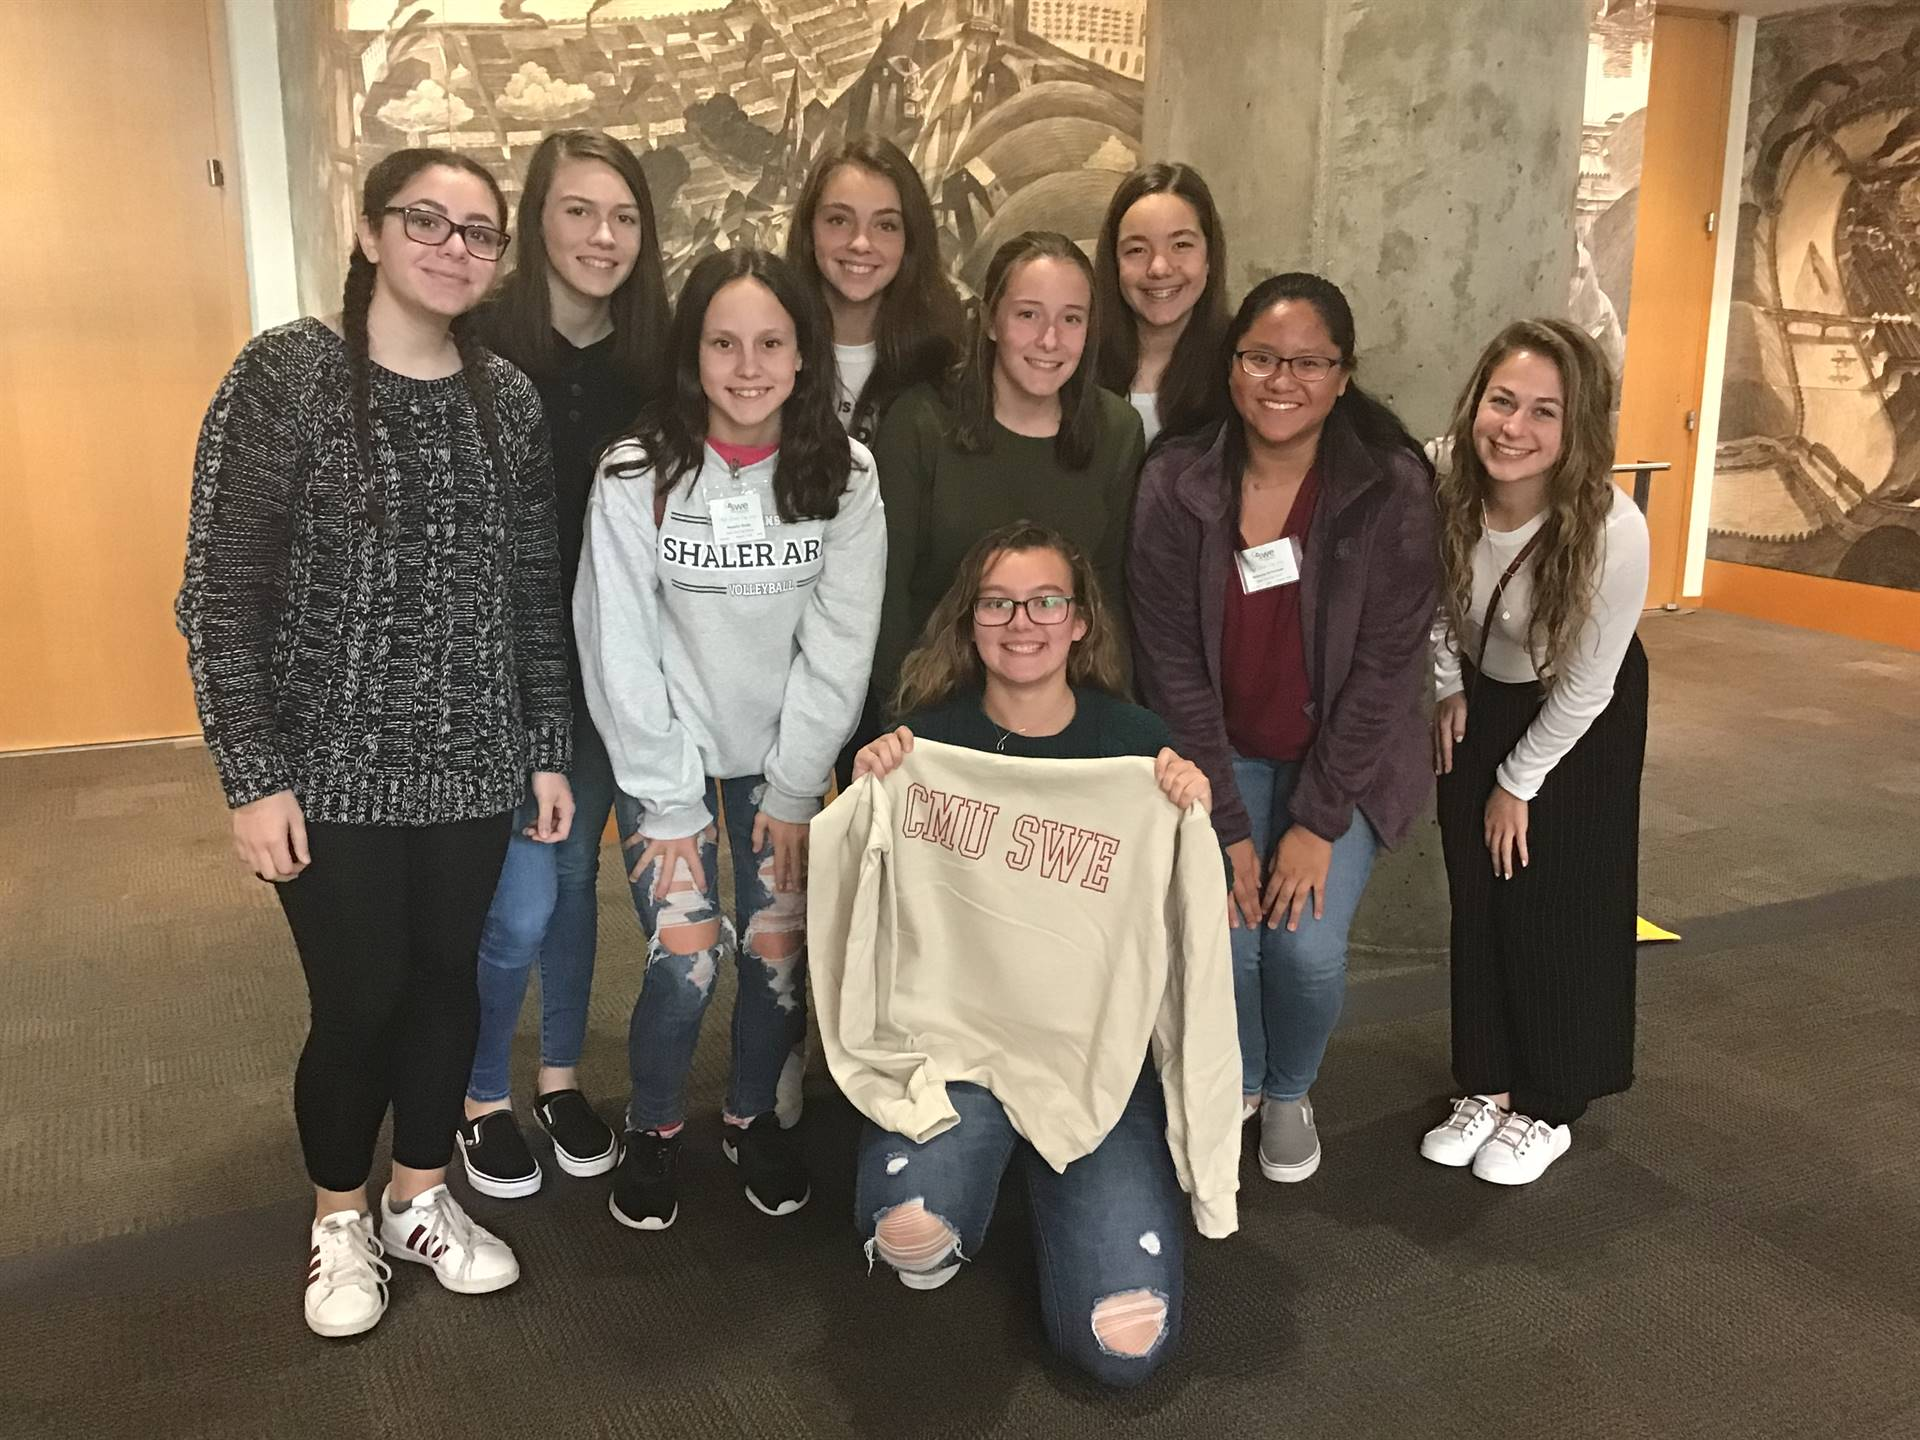 These girls learned about careers in engineering through a program at Carnegie Mellon University.